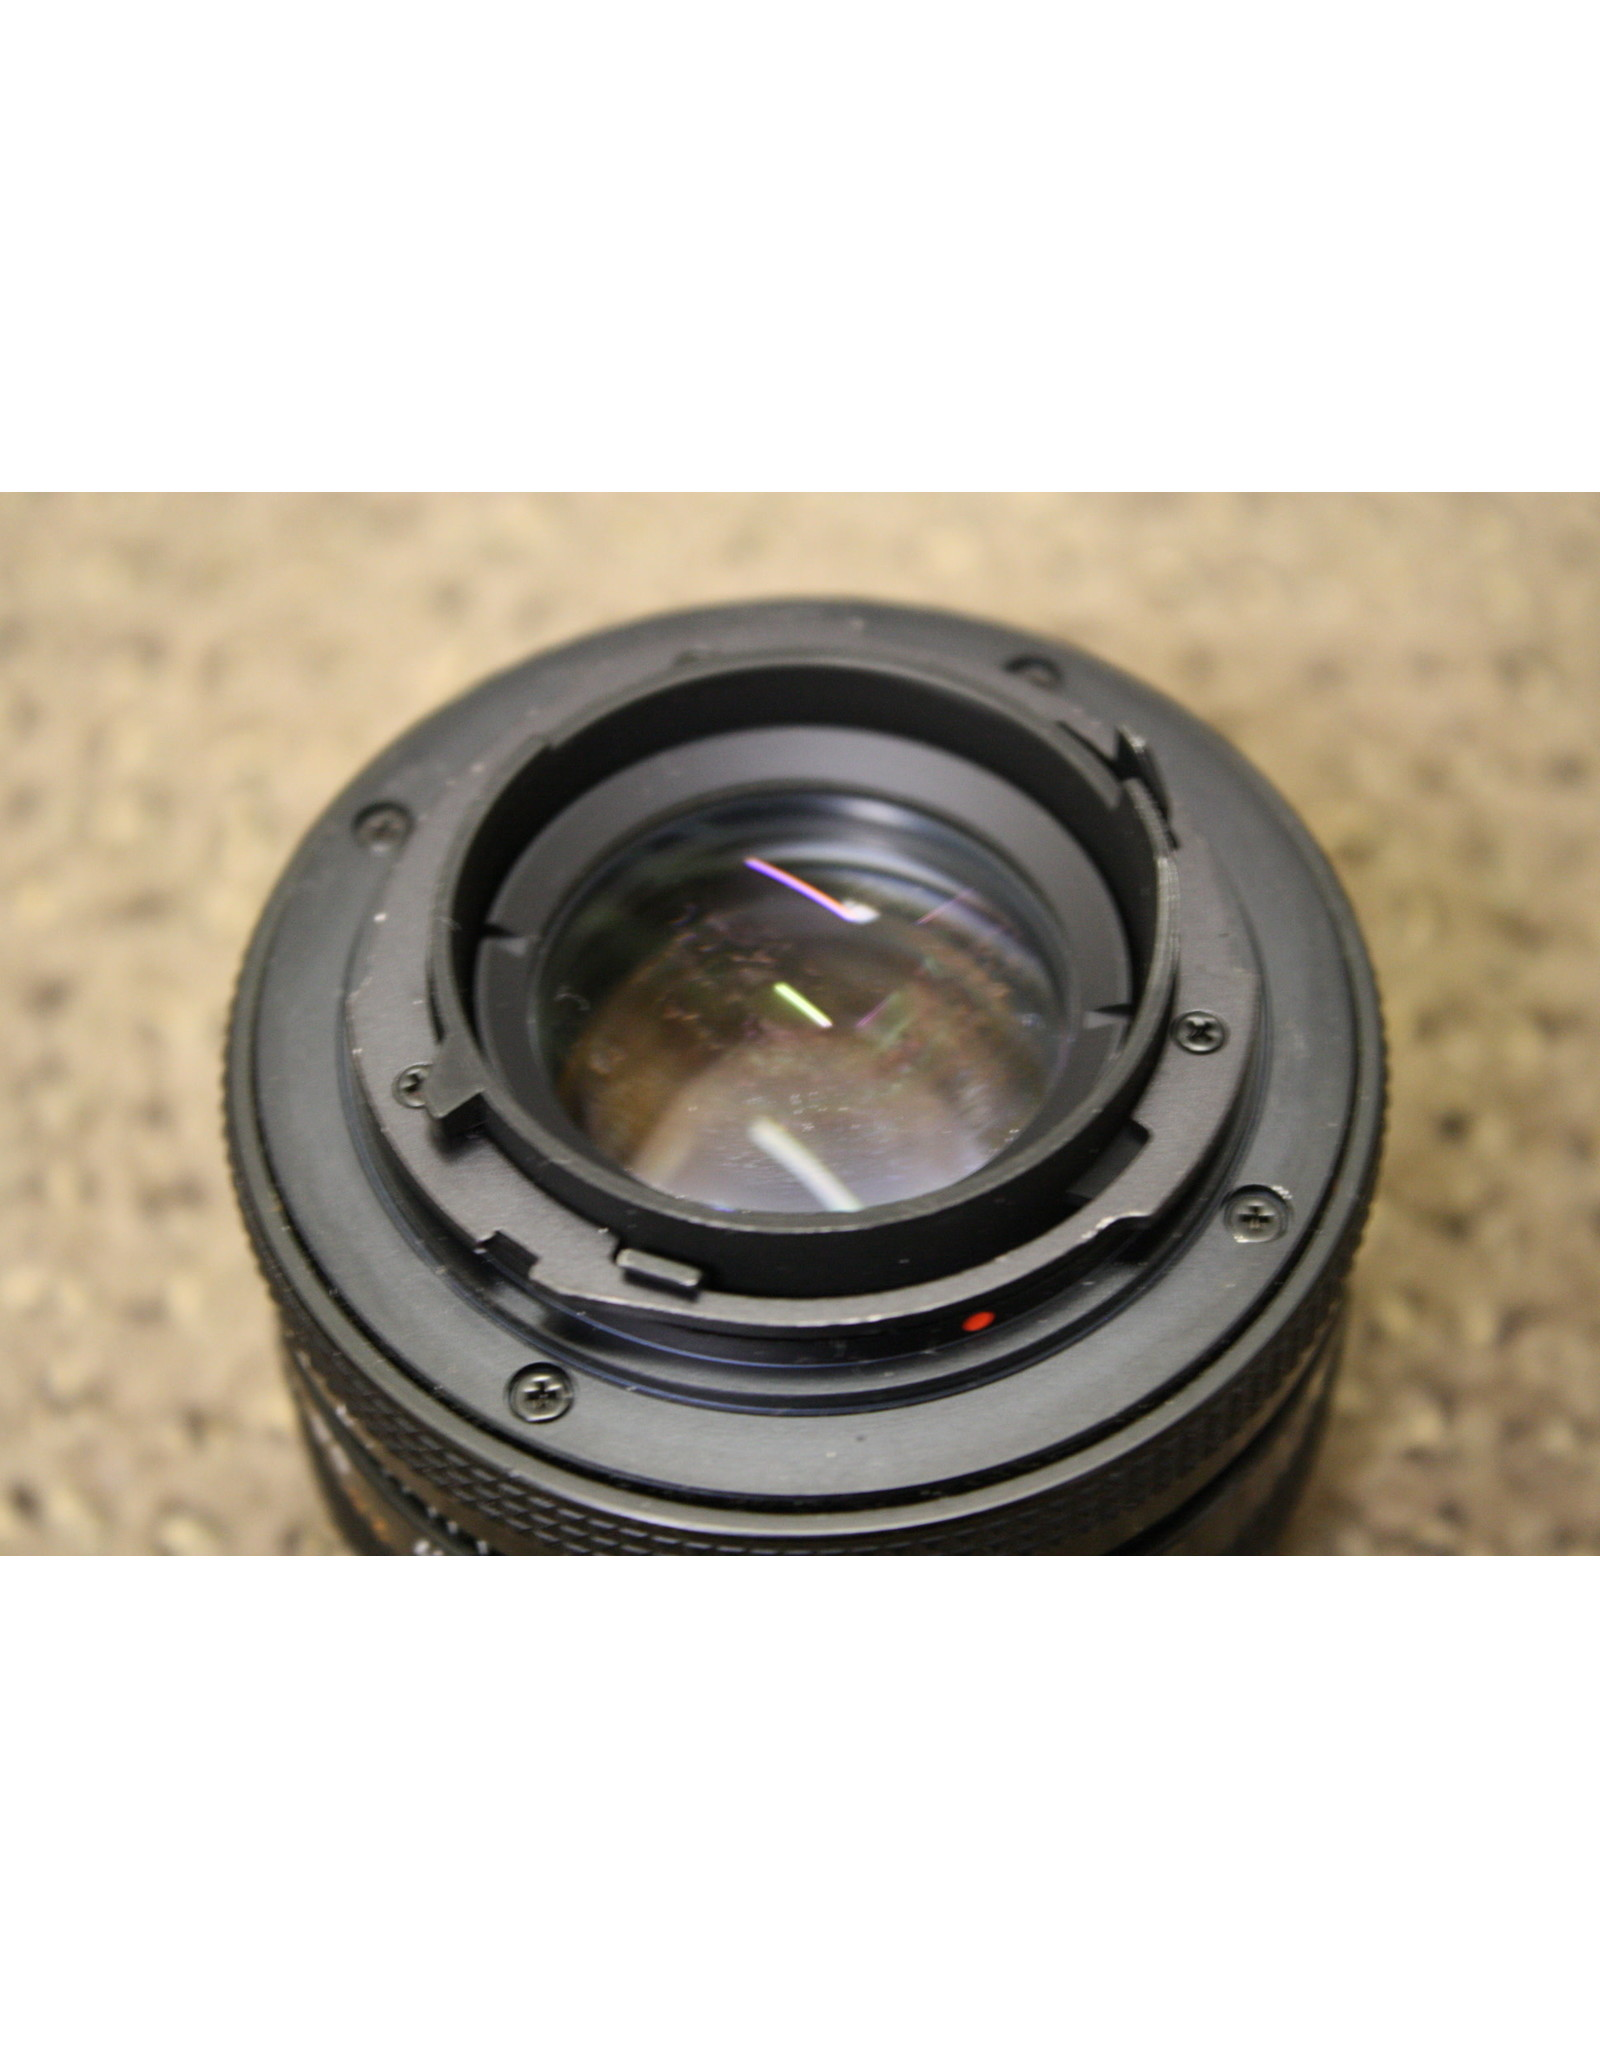 Carl Zeiss Planar 50mm 1.7 Red T Star with Hoya UV and Hood(Pre-owned)